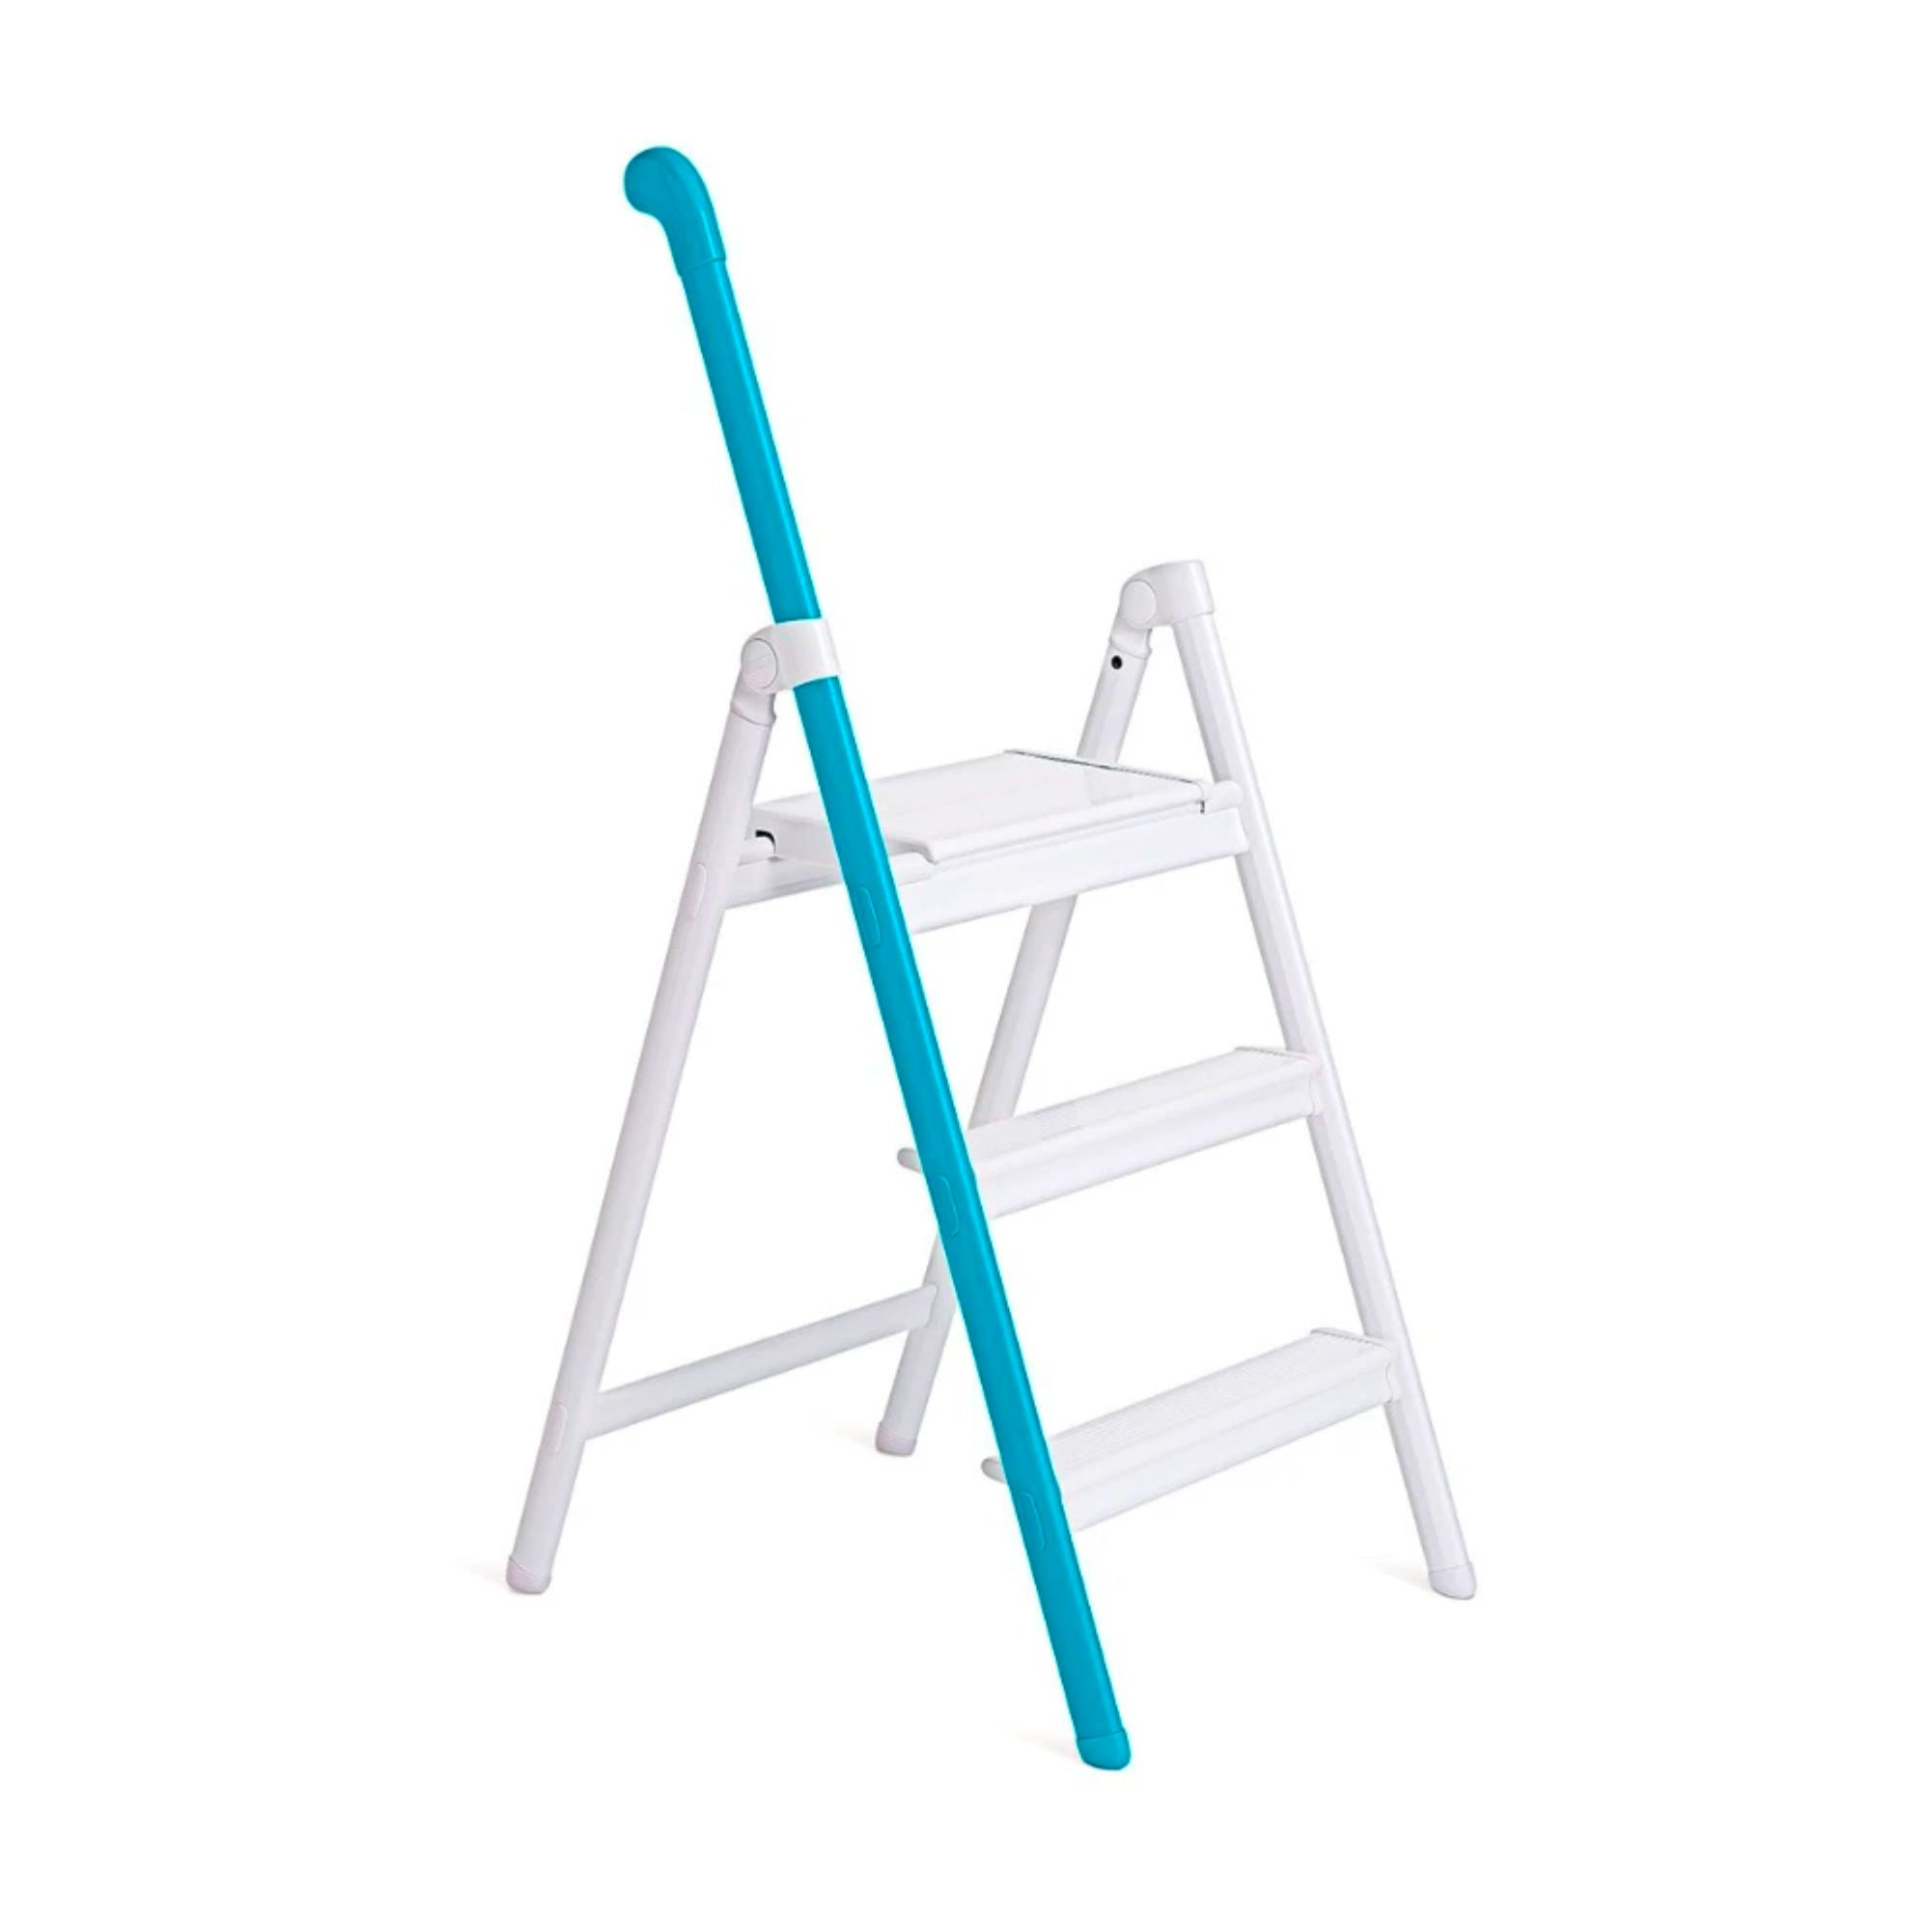 Hasegawa Handle step ladder, 3 steps, blue